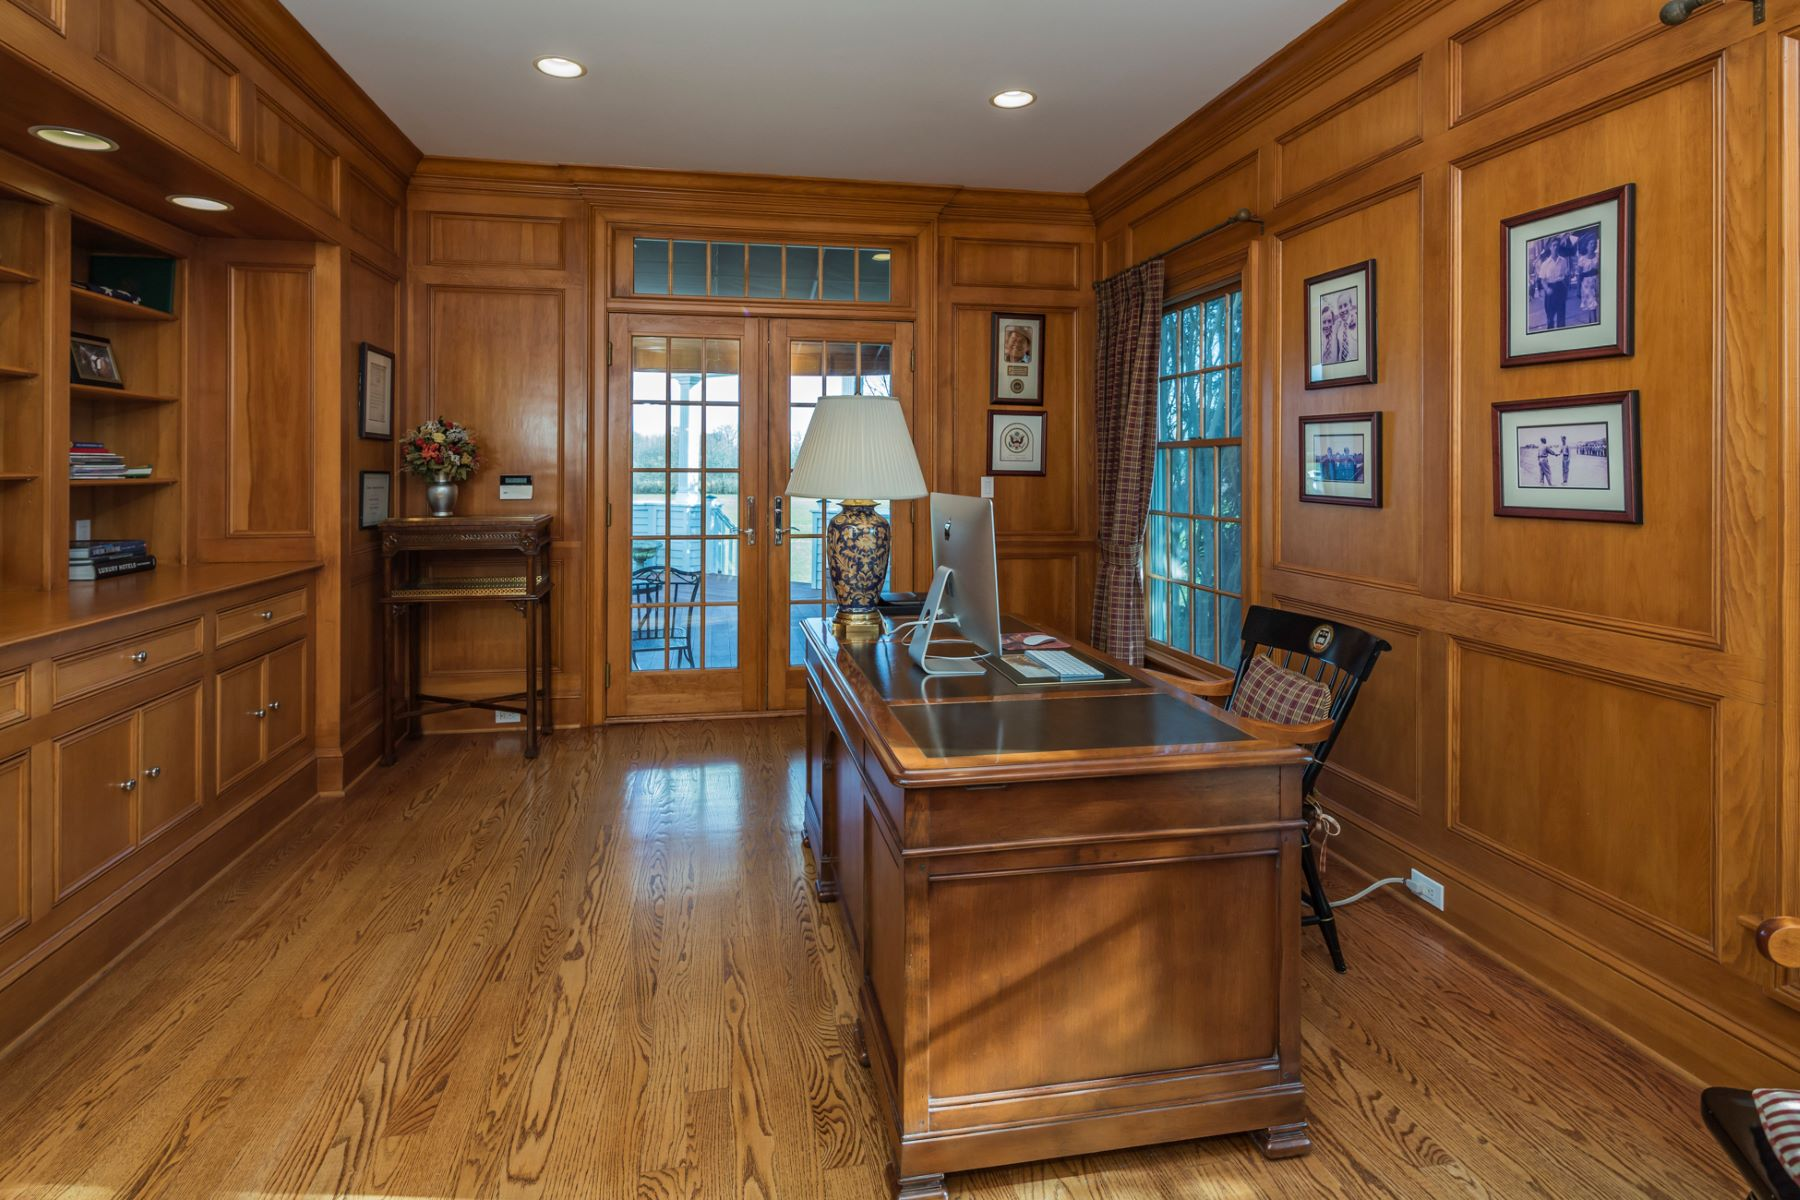 Additional photo for property listing at 6+ Acres - Enchanting Custom Home 81 Petty Road, Cranbury, New Jersey 08512 United States